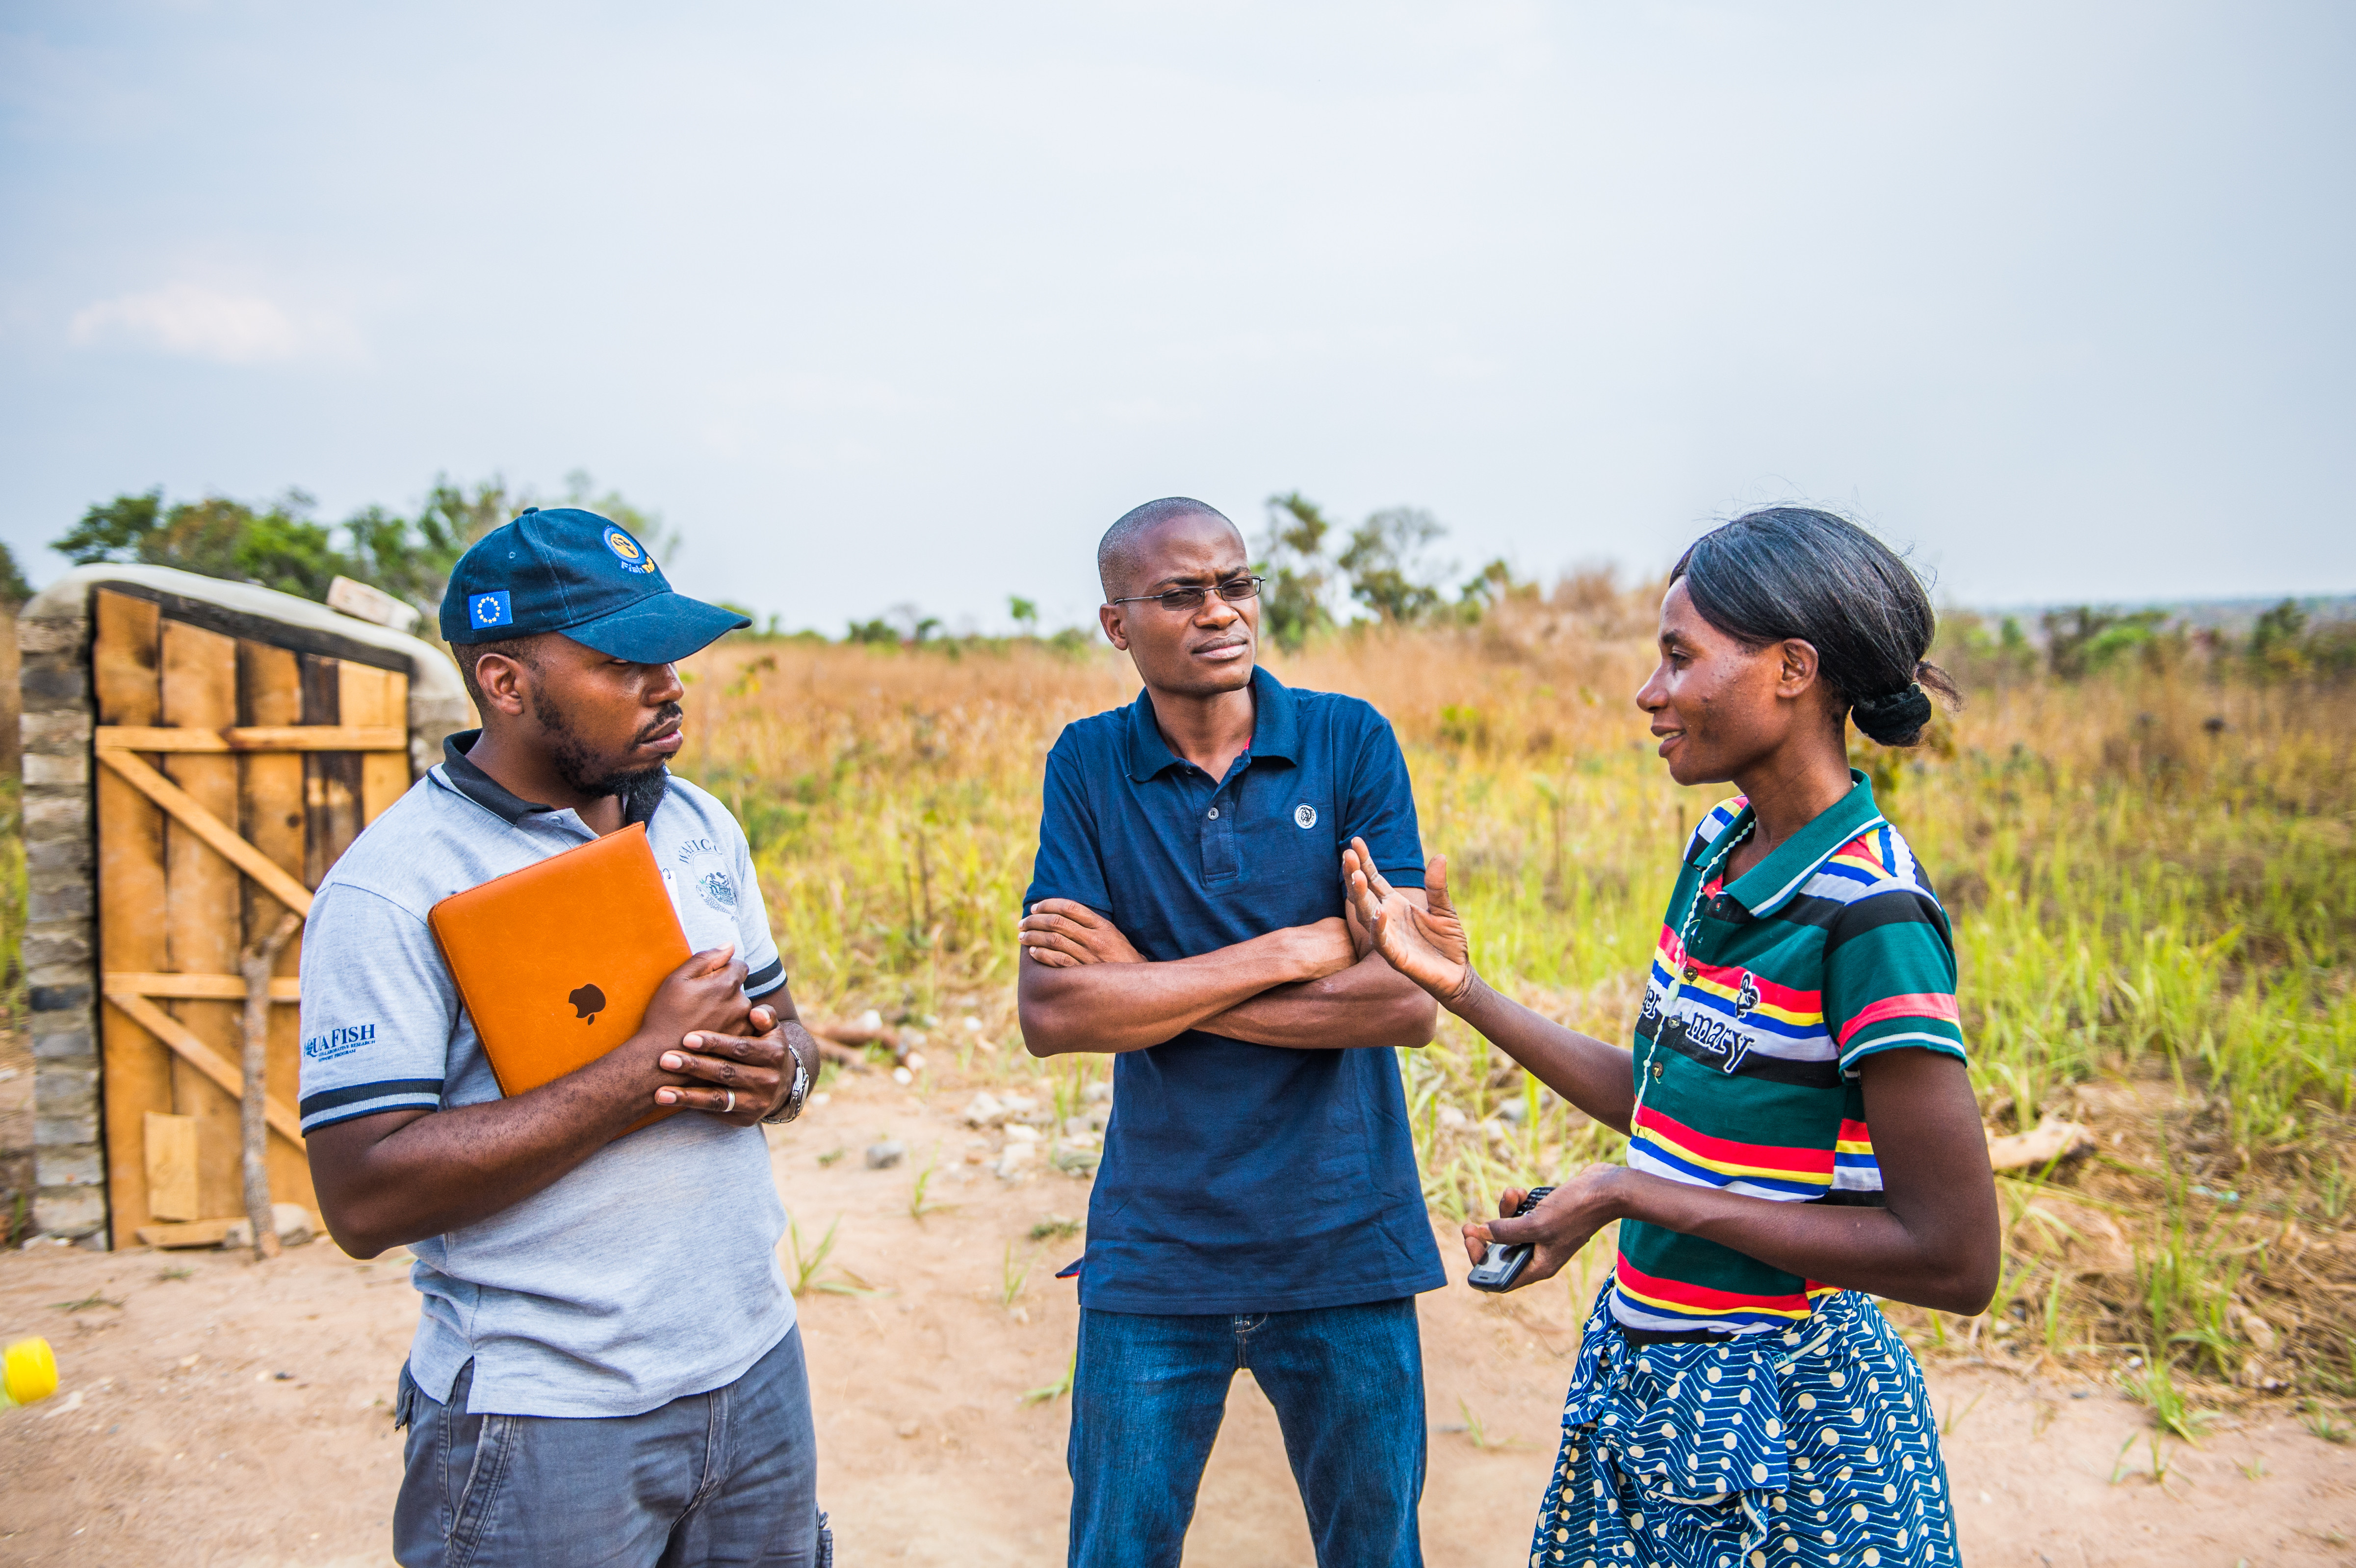 WorldFish staff perform frequent field visits to assist smallholder aquaculture farmers. Photo by Chosa Mweemba.